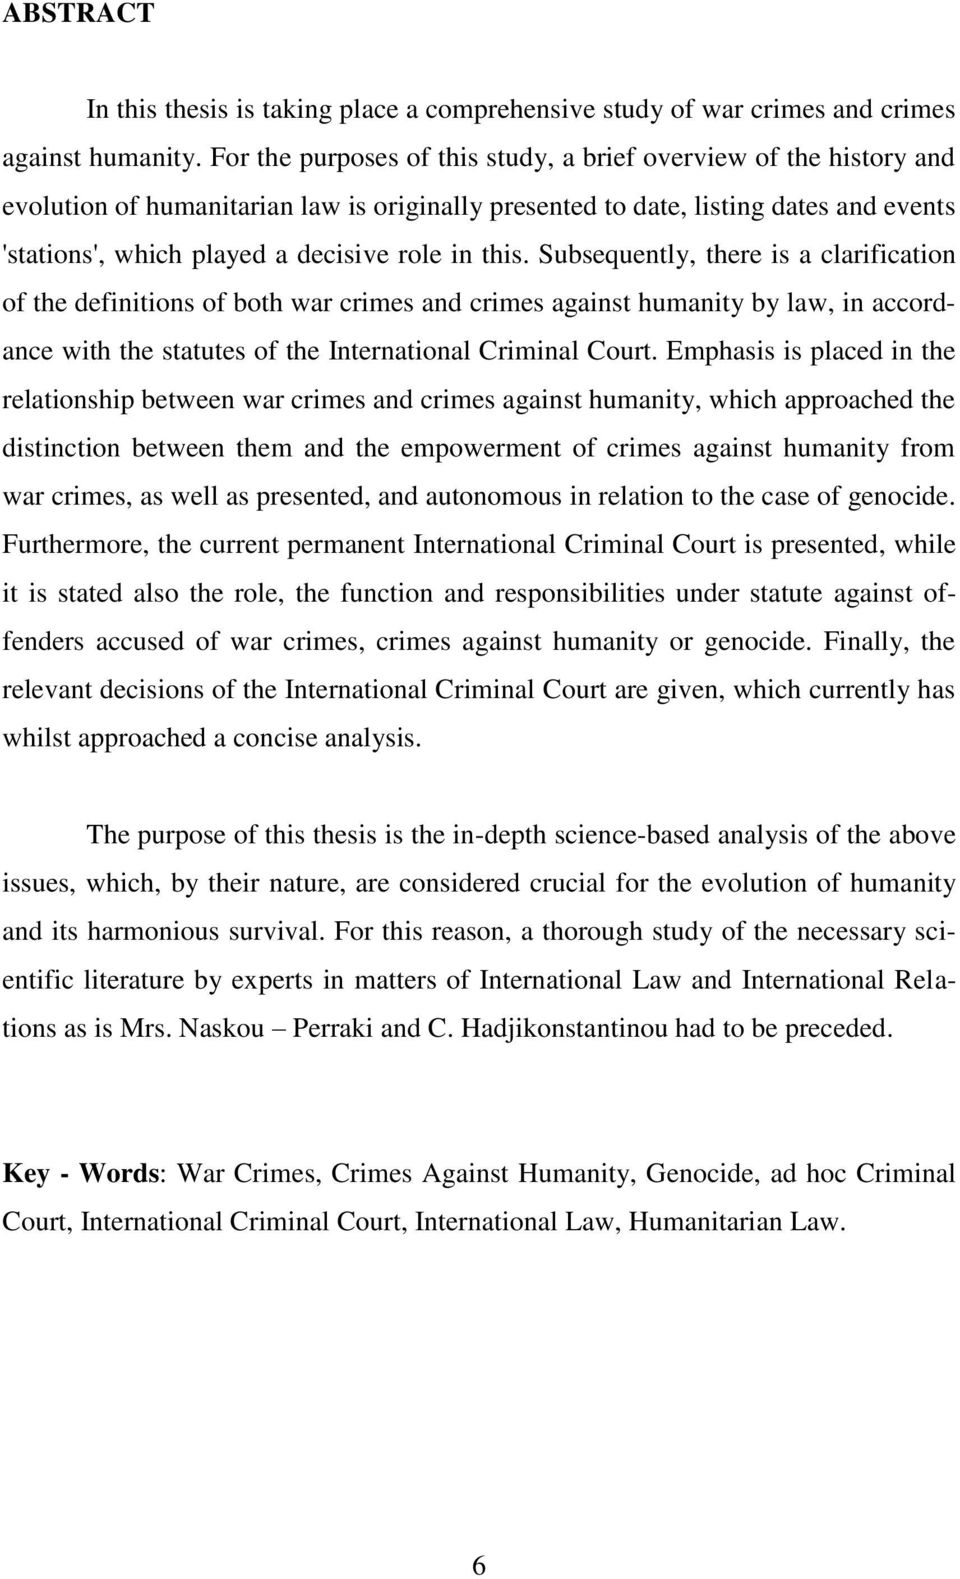 this. Subsequently, there is a clarification of the definitions of both war crimes and crimes against humanity by law, in accordance with the statutes of the International Criminal Court.